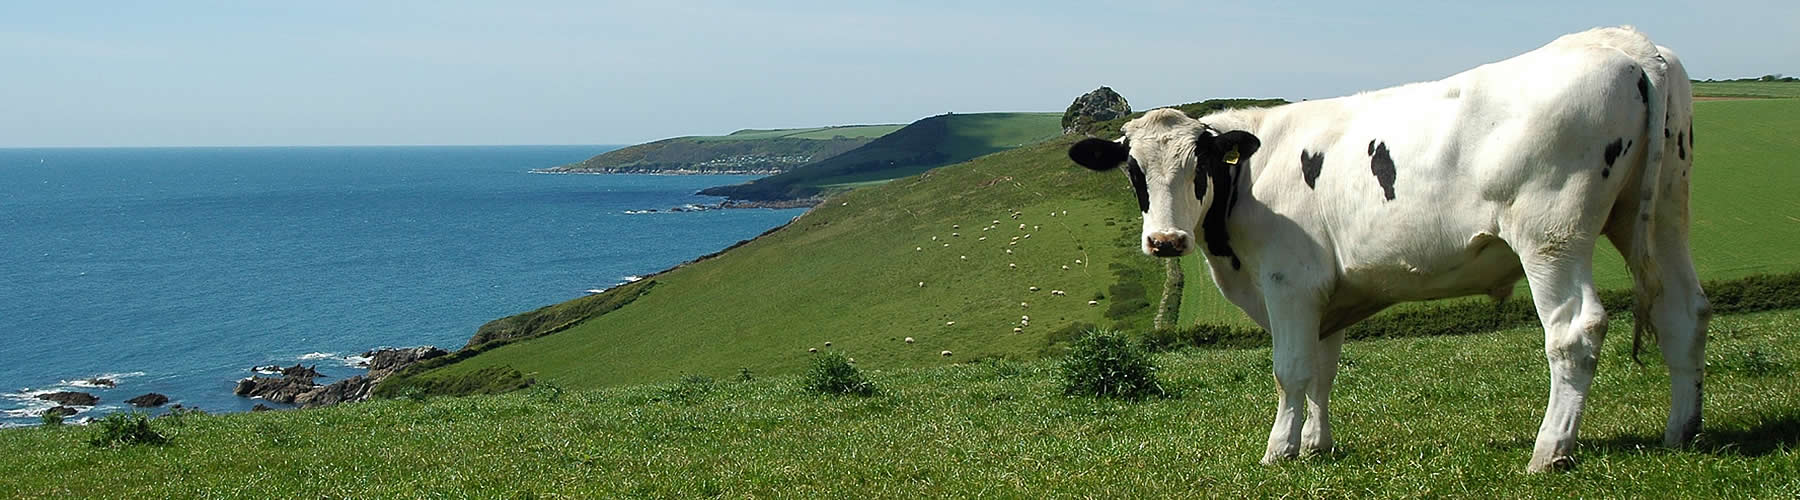 Holiday Cottages on ther South Devon Coast